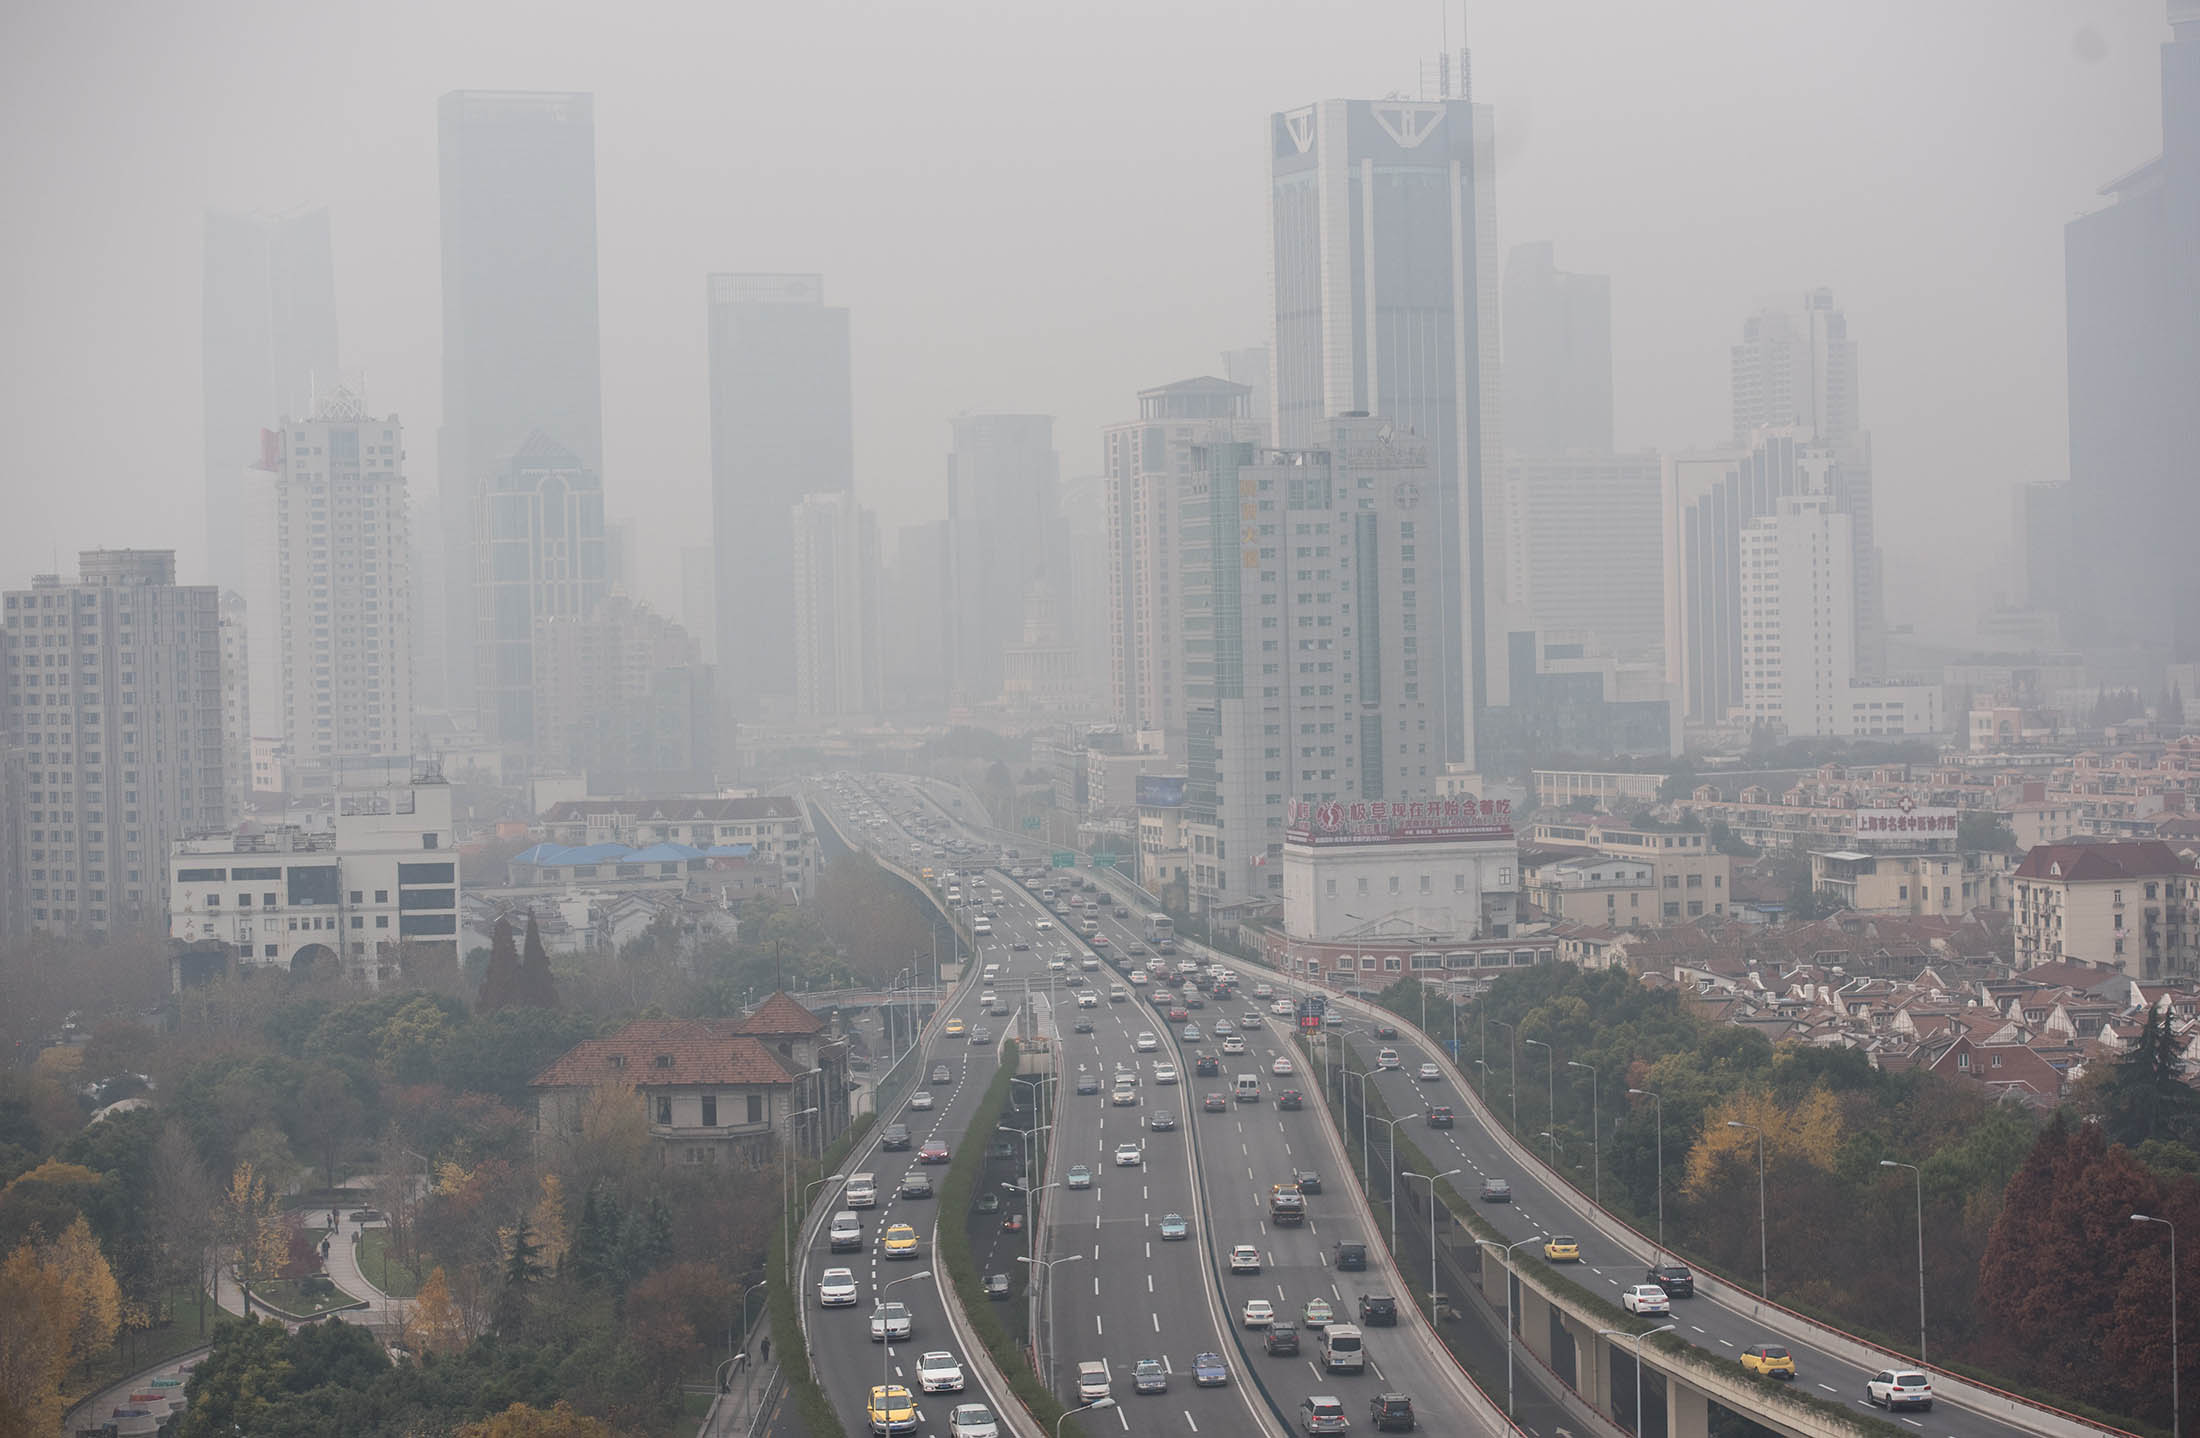 pollution chokes chinese cities as smog spurs indoor warnings bloomberg. Black Bedroom Furniture Sets. Home Design Ideas